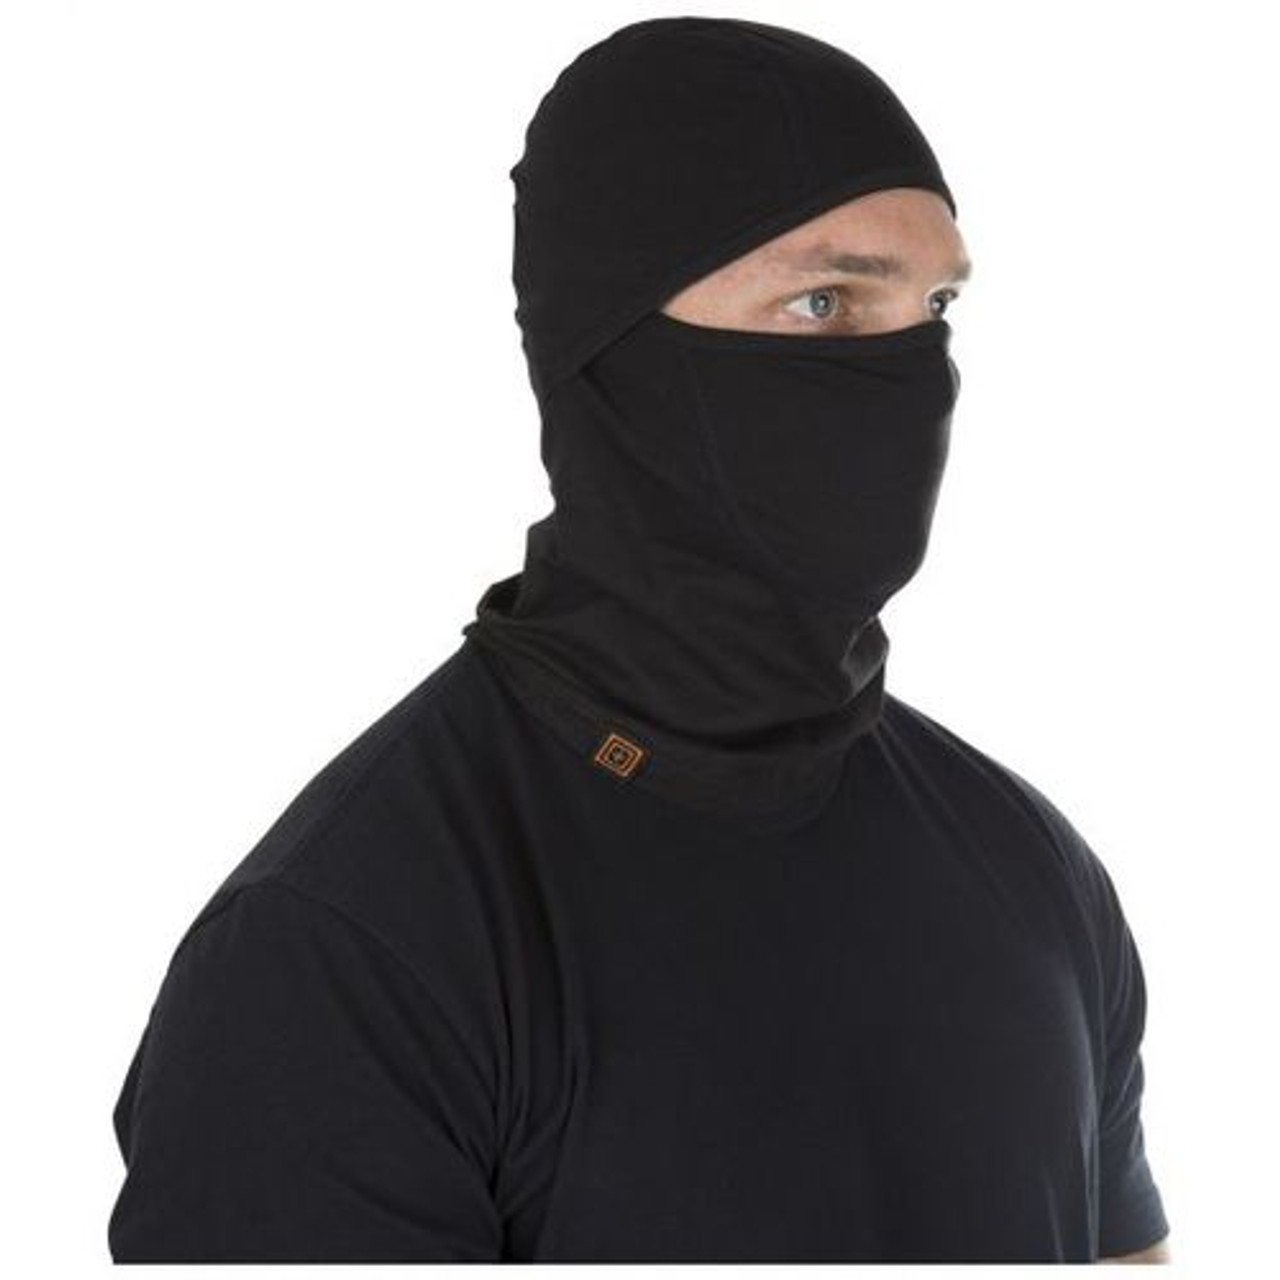 5.11 Tactical Balaclava, No Melt, No Drip Performance, Face Panel Shaping for Best Fit, available in Black or Dark Navy 89430